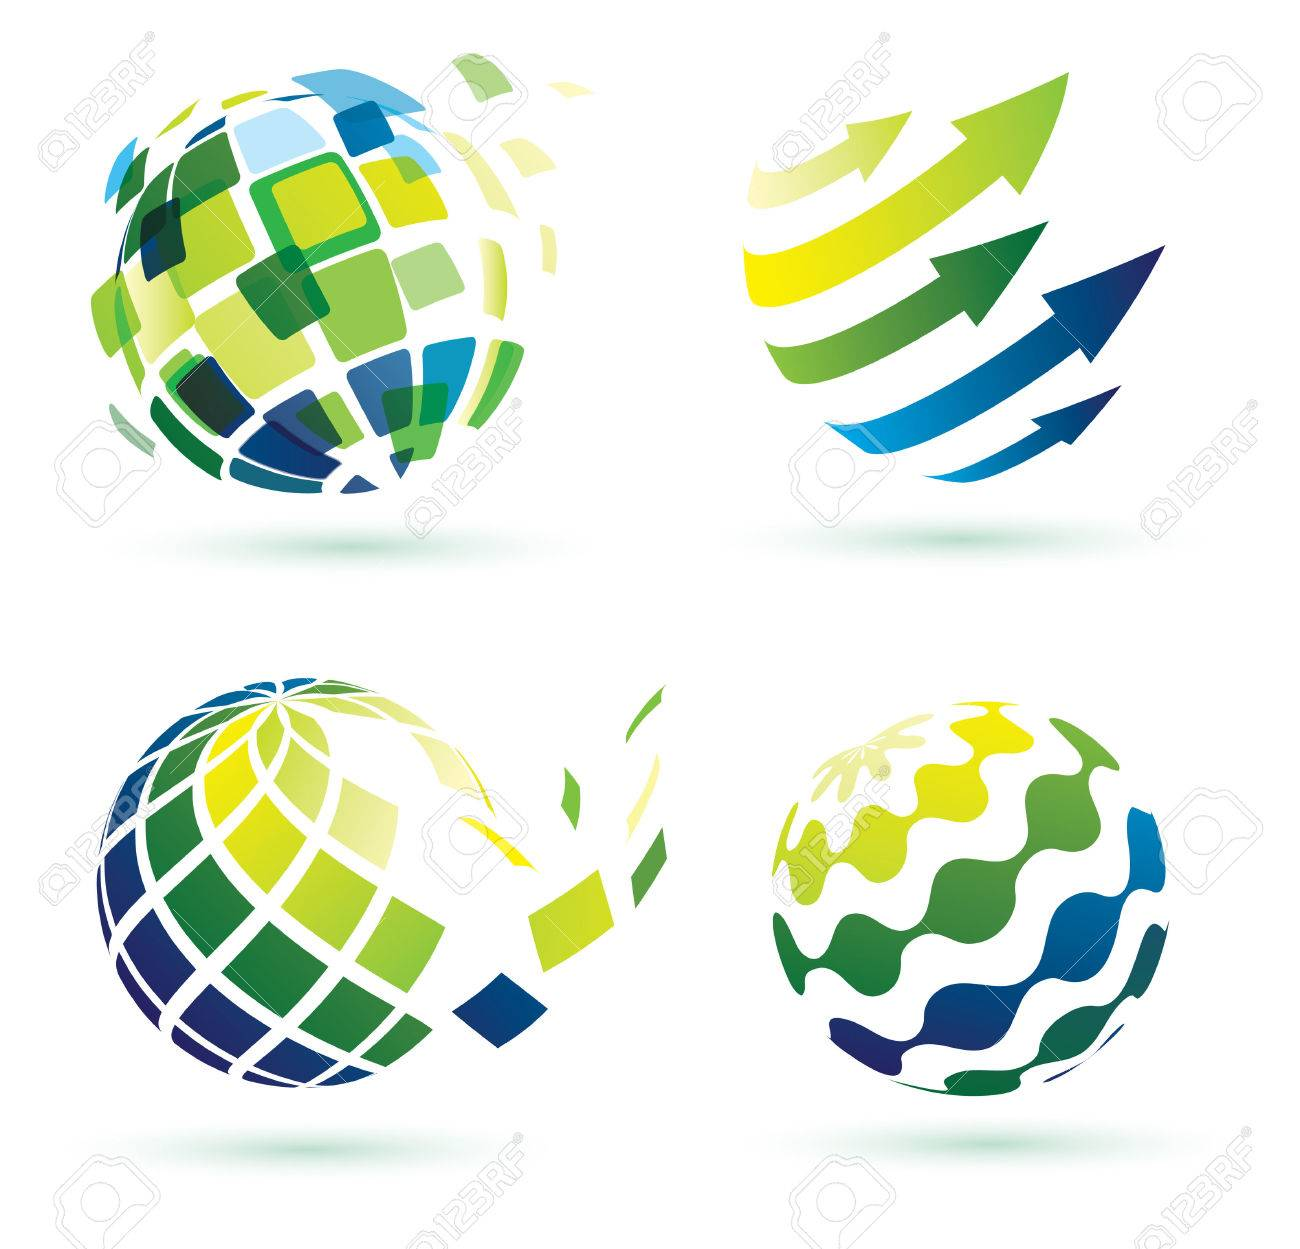 abstract globe icons, business and social networks concept Stock Vector - 22338629